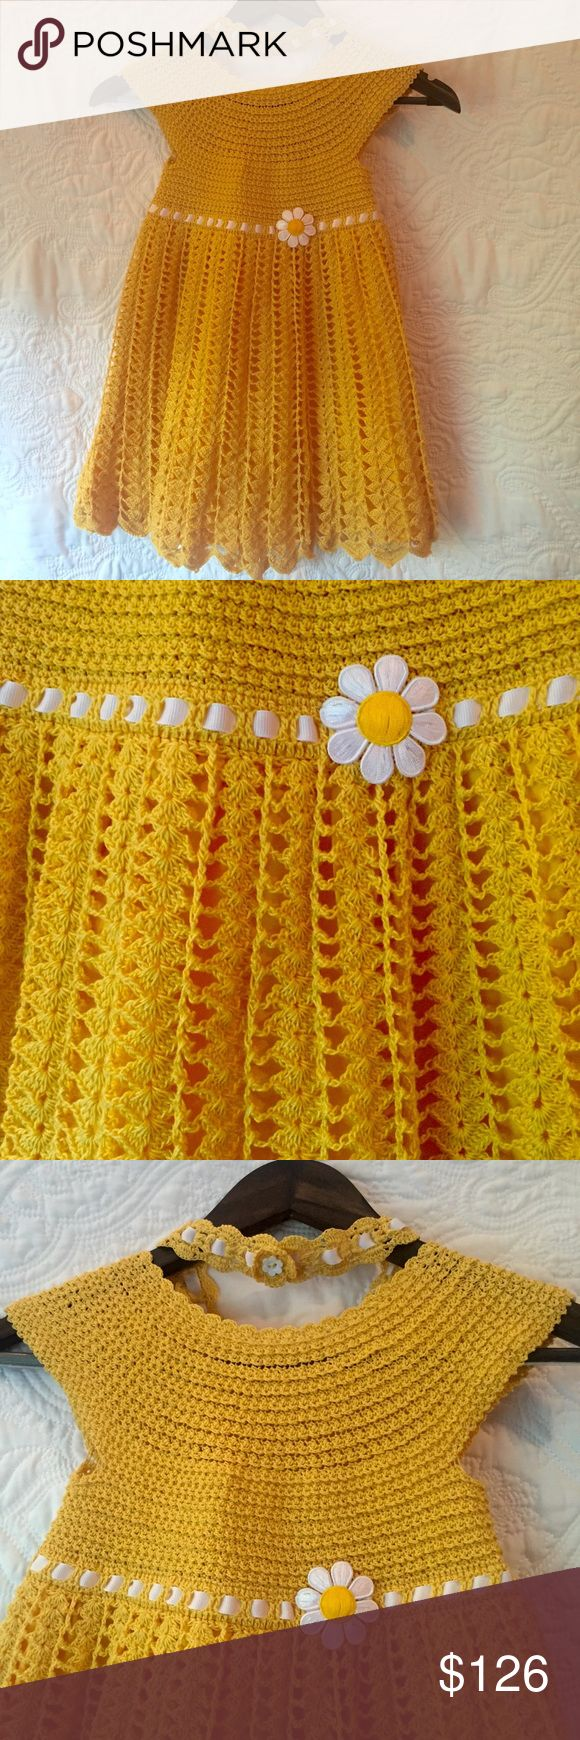 """Handmade Crochet Girl's Dress 😍 Beautiful Handmade Crochet Girl's Dress. Yellow w/ white ribbon detail & a matching headband. Length from shoulder to hem is approx. 23""""in, width at empire waist is 11"""" across or 22""""in total. Nice lining under skirt. Dress is a work of art! Great for a photo session as we end this summer season. Please let me know if you have any other questions I can answer. No tags, but it is NEW & never worn, created solely for purpose or selling on Poshmark. One of a…"""